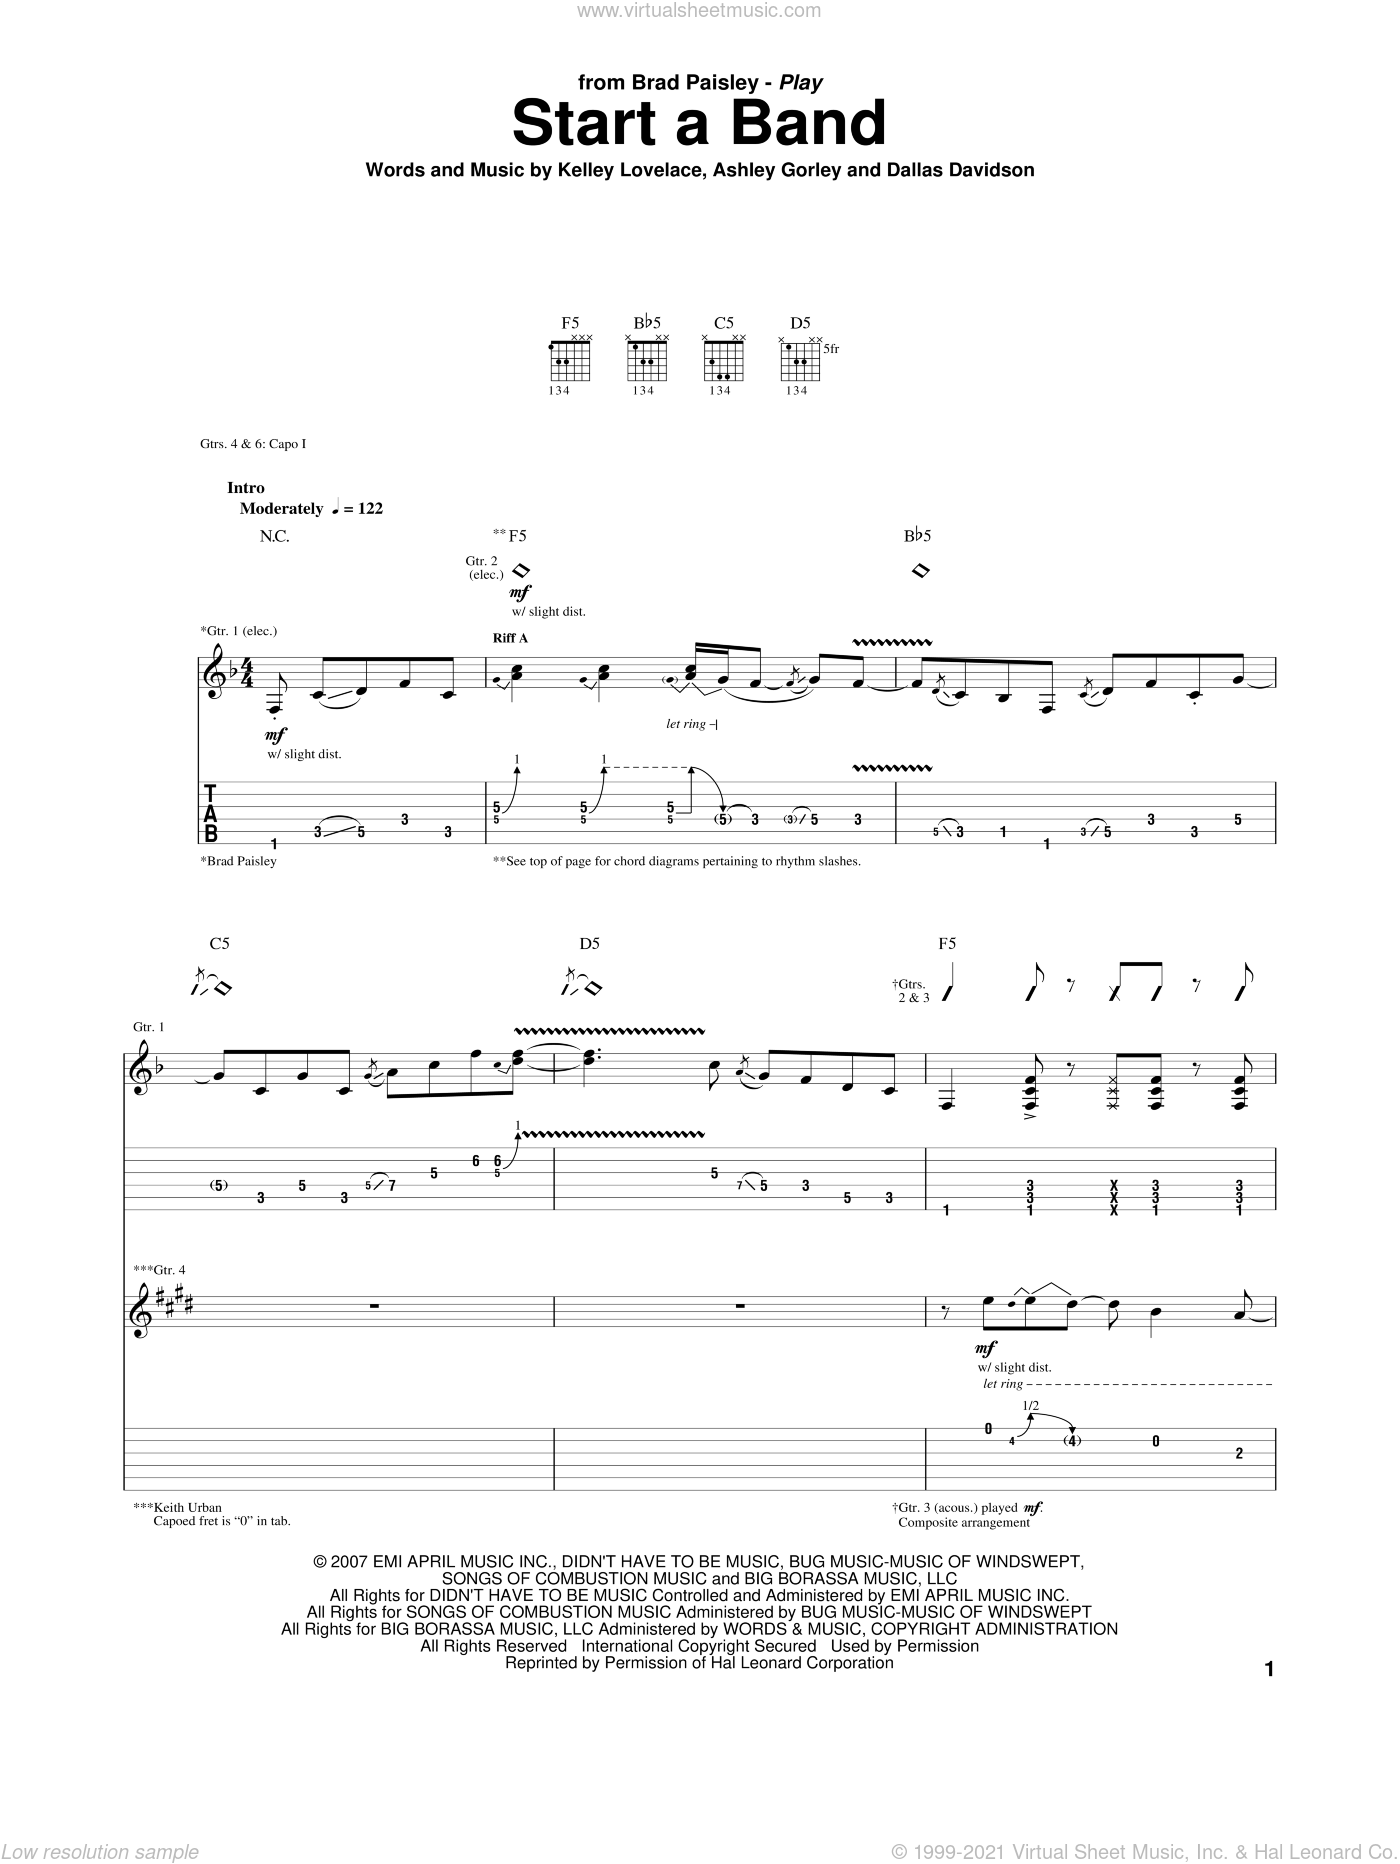 Start A Band sheet music for guitar (tablature) by Brad Paisley, Keith Urban, Ashley Gorley, Dallas Davidson and Kelley Lovelace